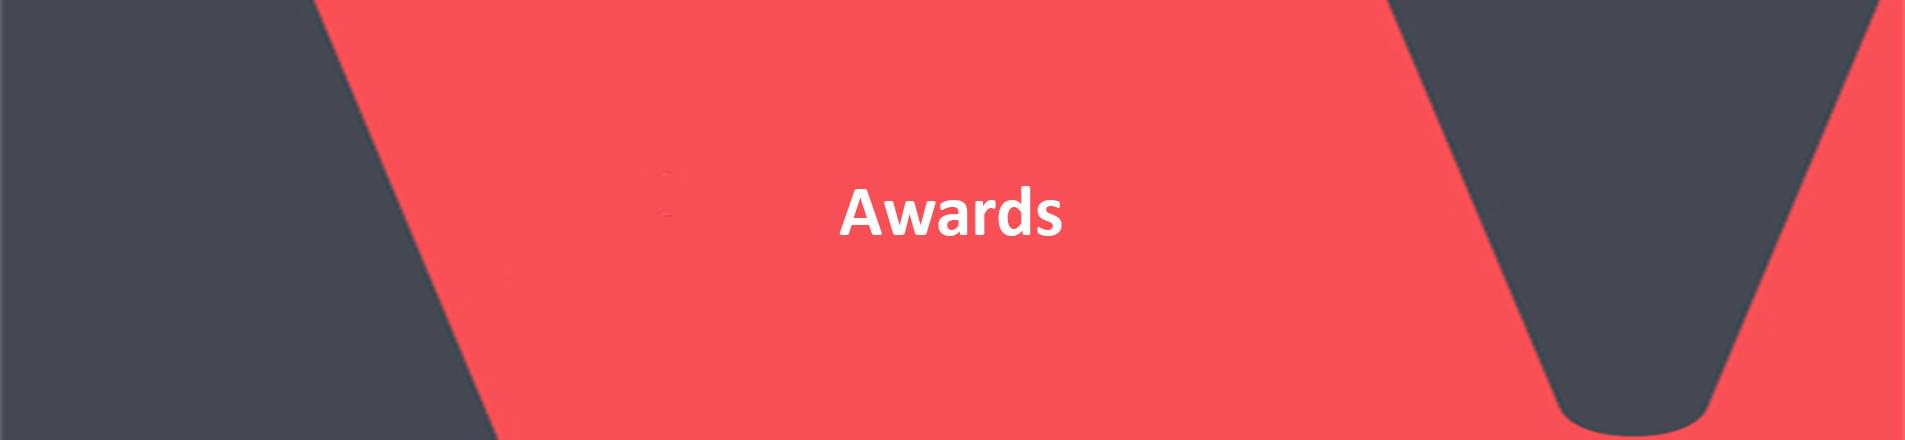 Image of the word awards on a red background